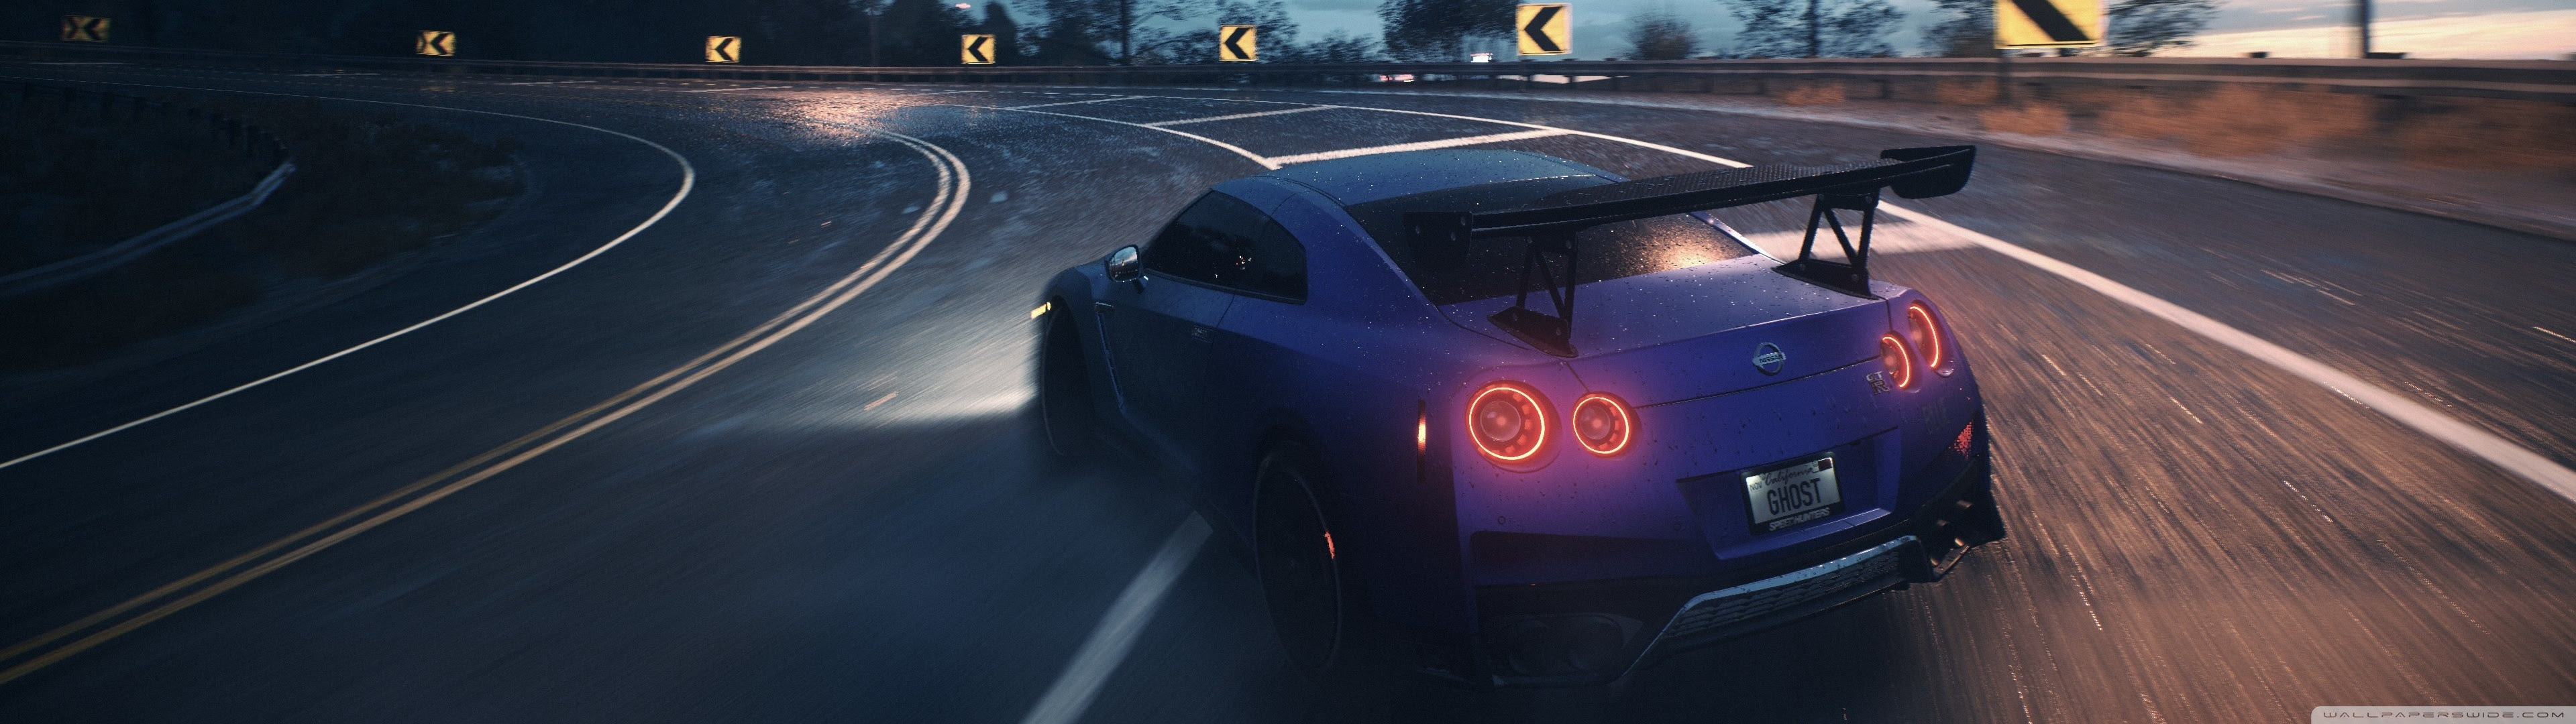 Need For Speed 2015 Ultra Hd Desktop Background Wallpaper For